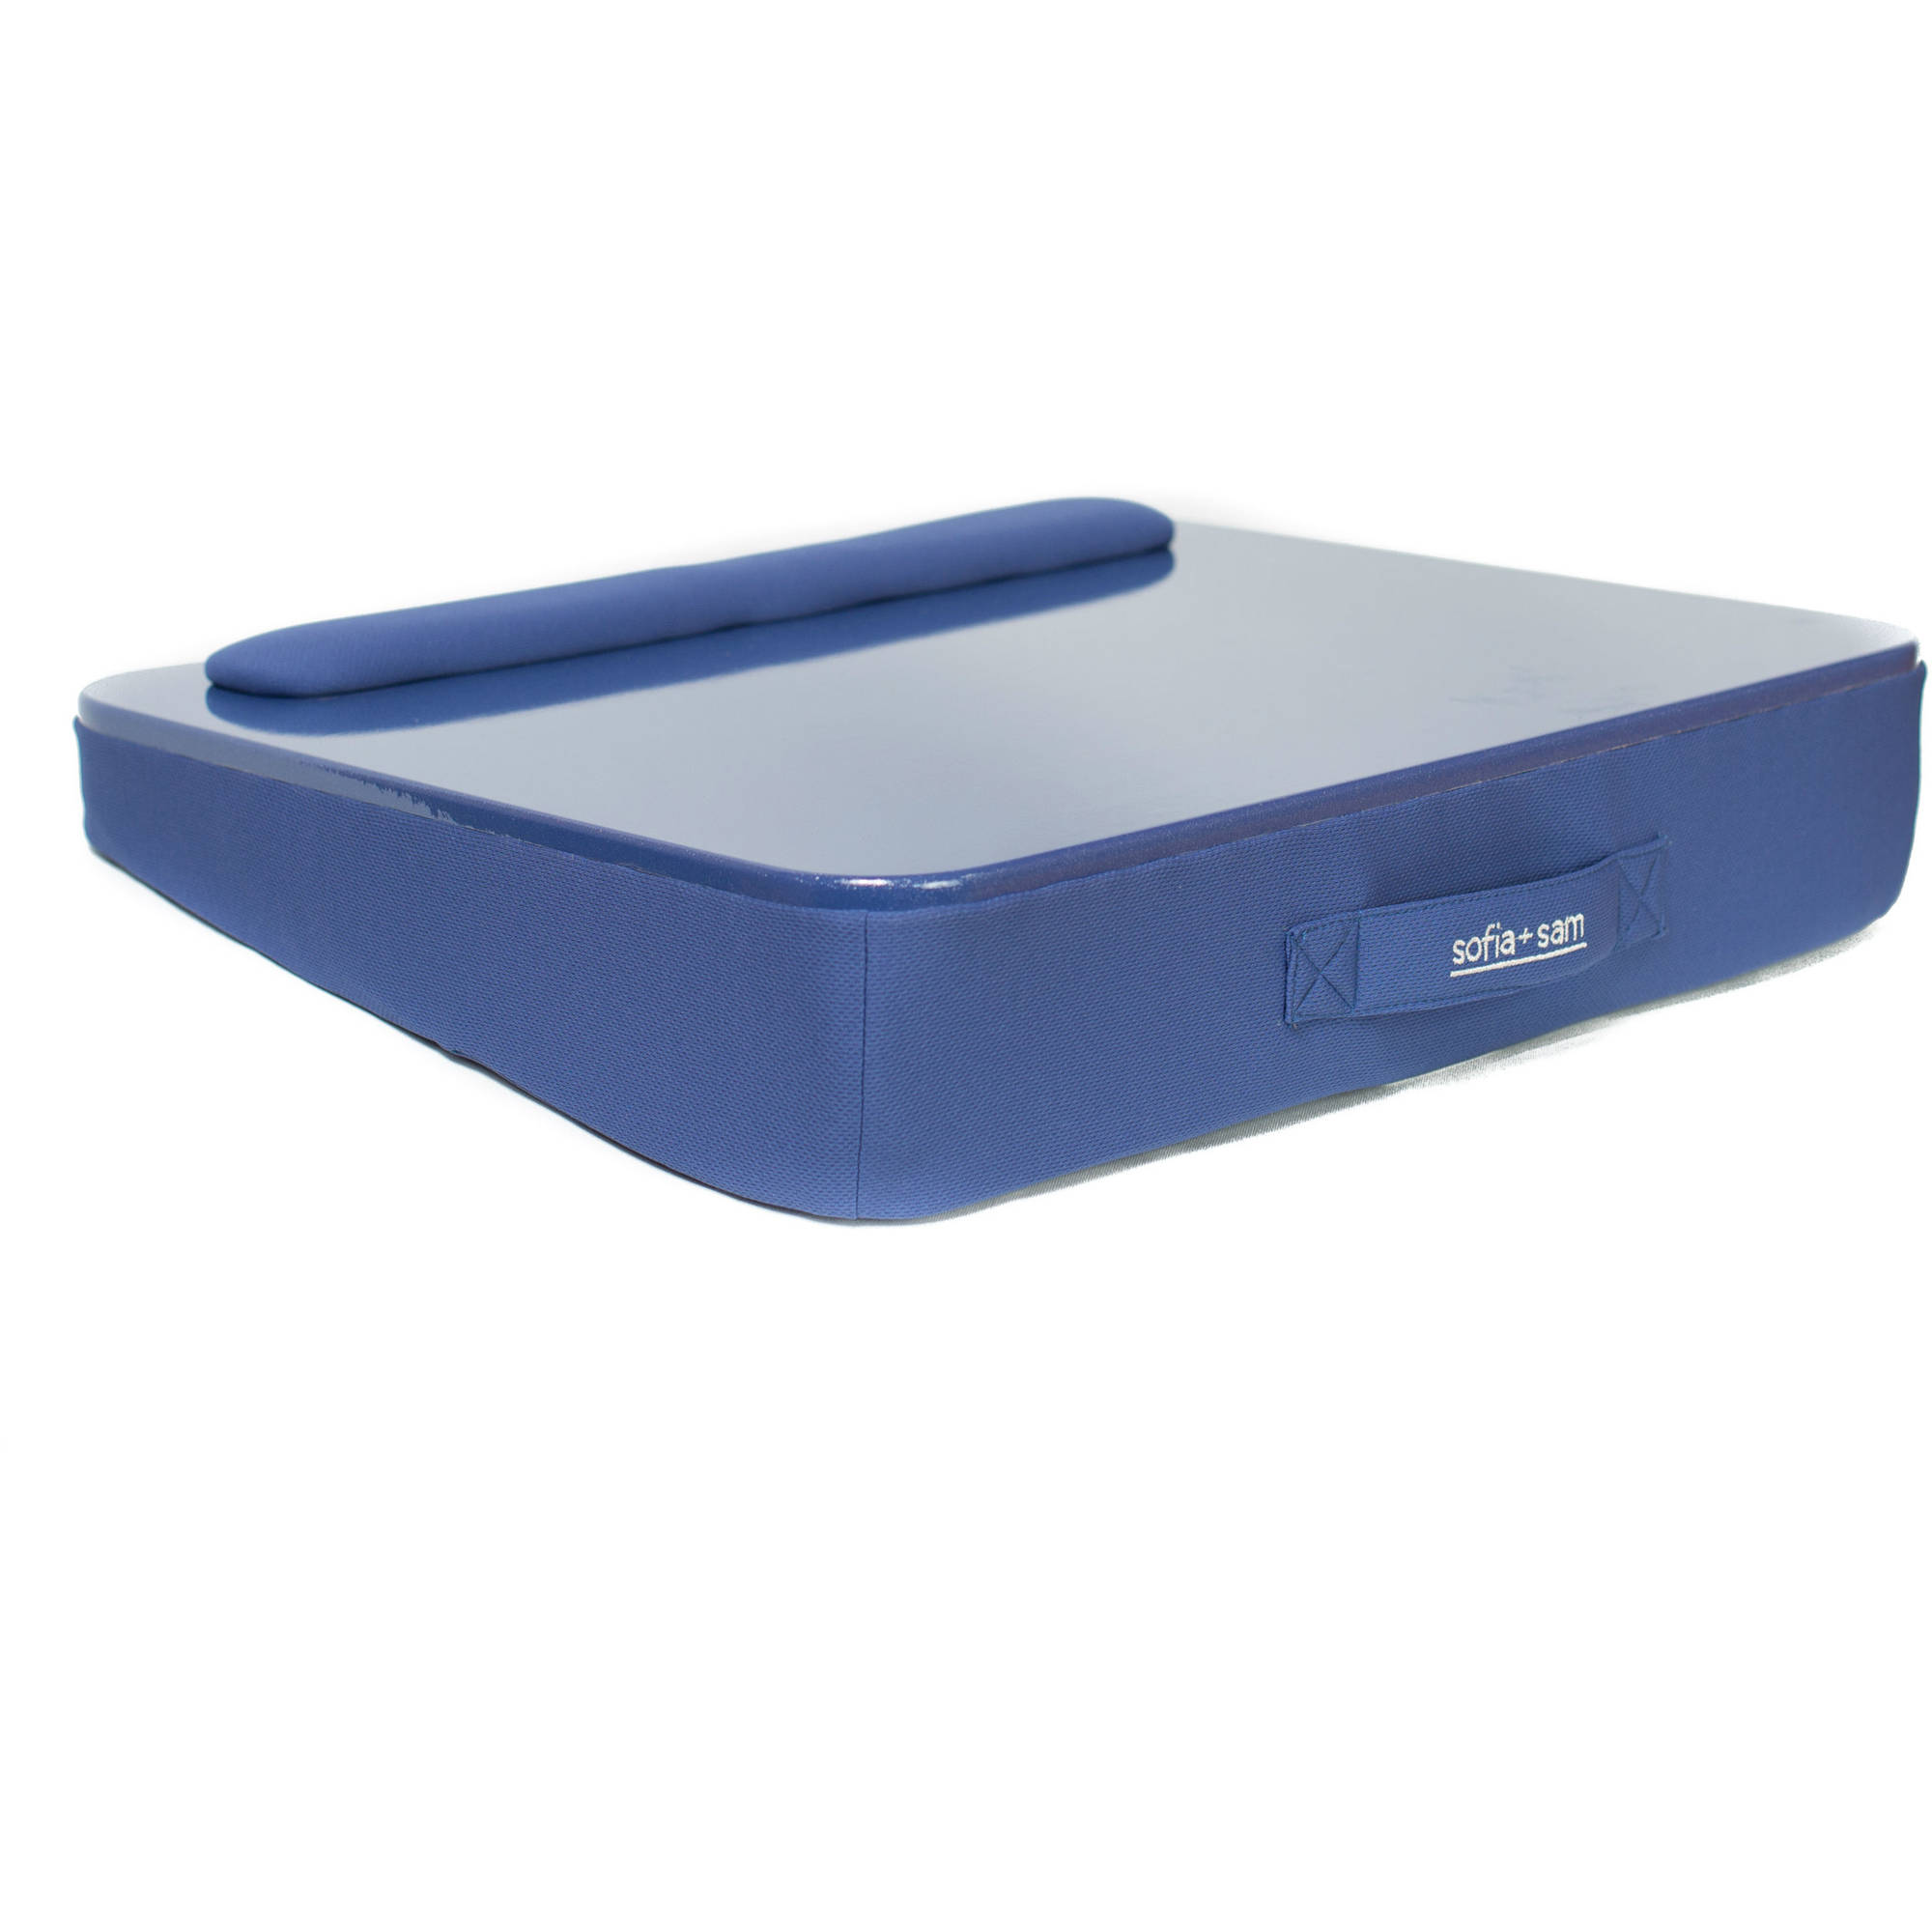 Sofia Sam All Purpose Lap Desk Blue Walmart Com